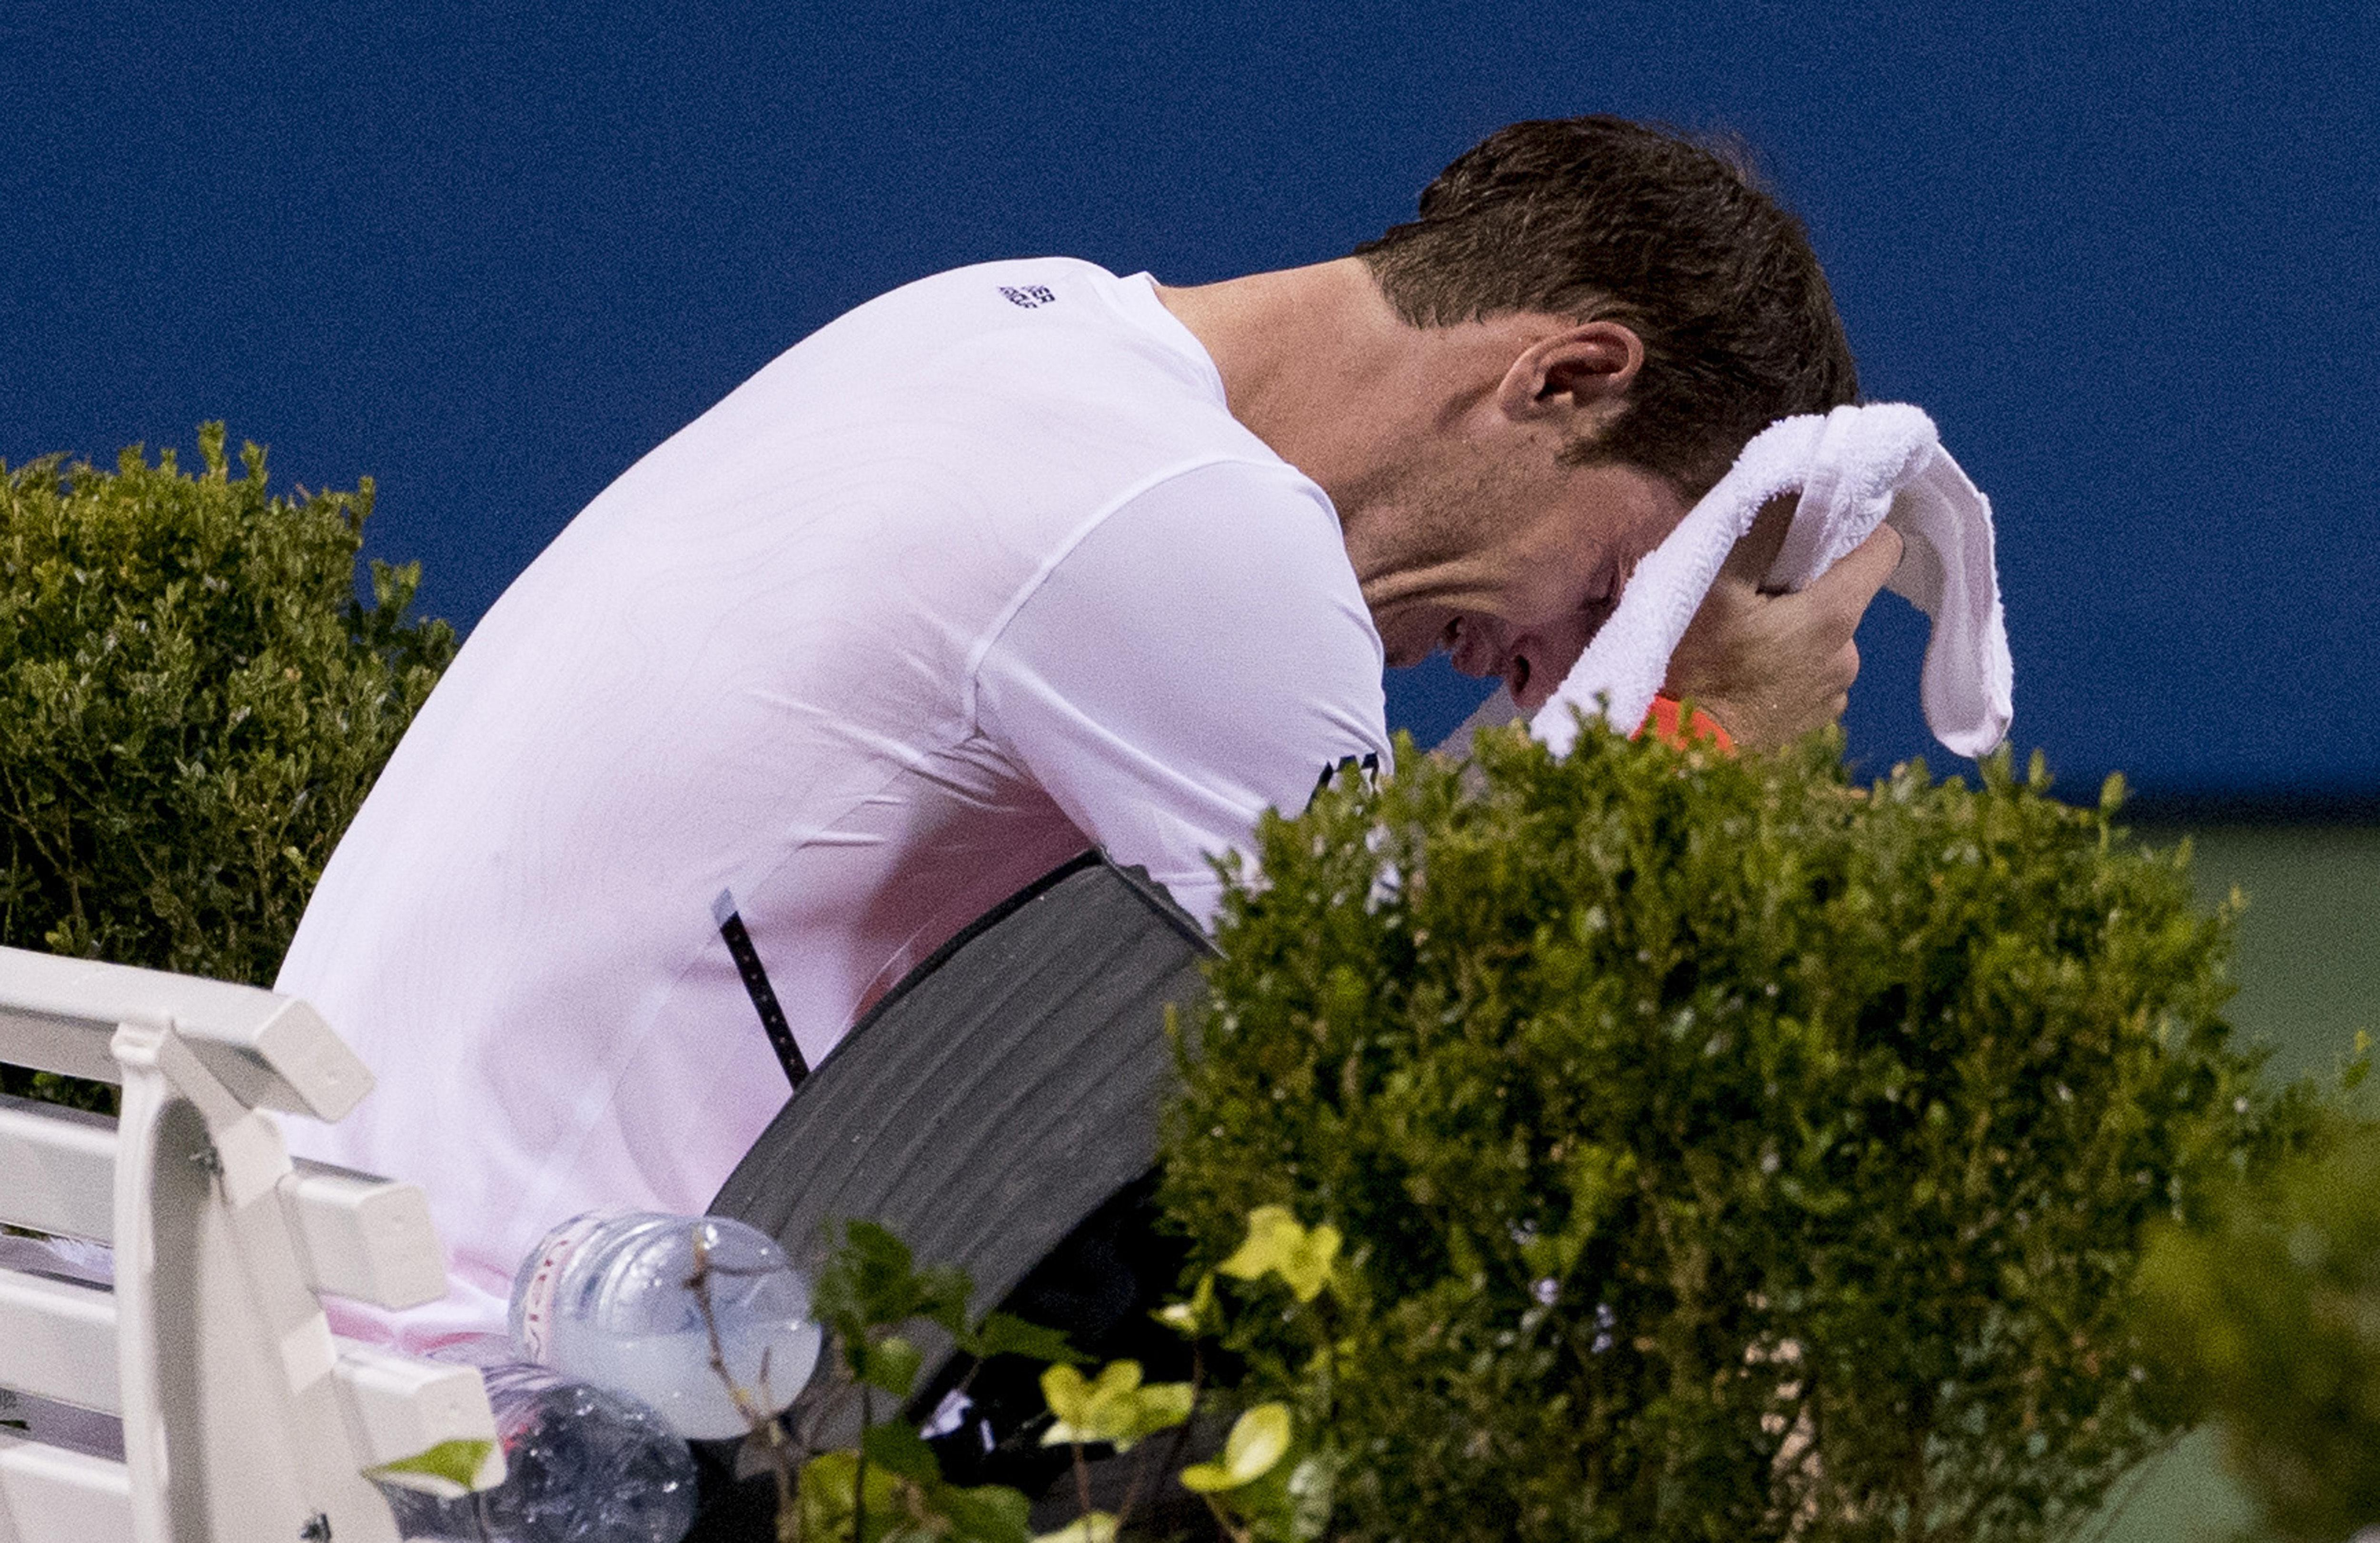 Murray breaks down at the end of his win over Romanian player Marius Copil